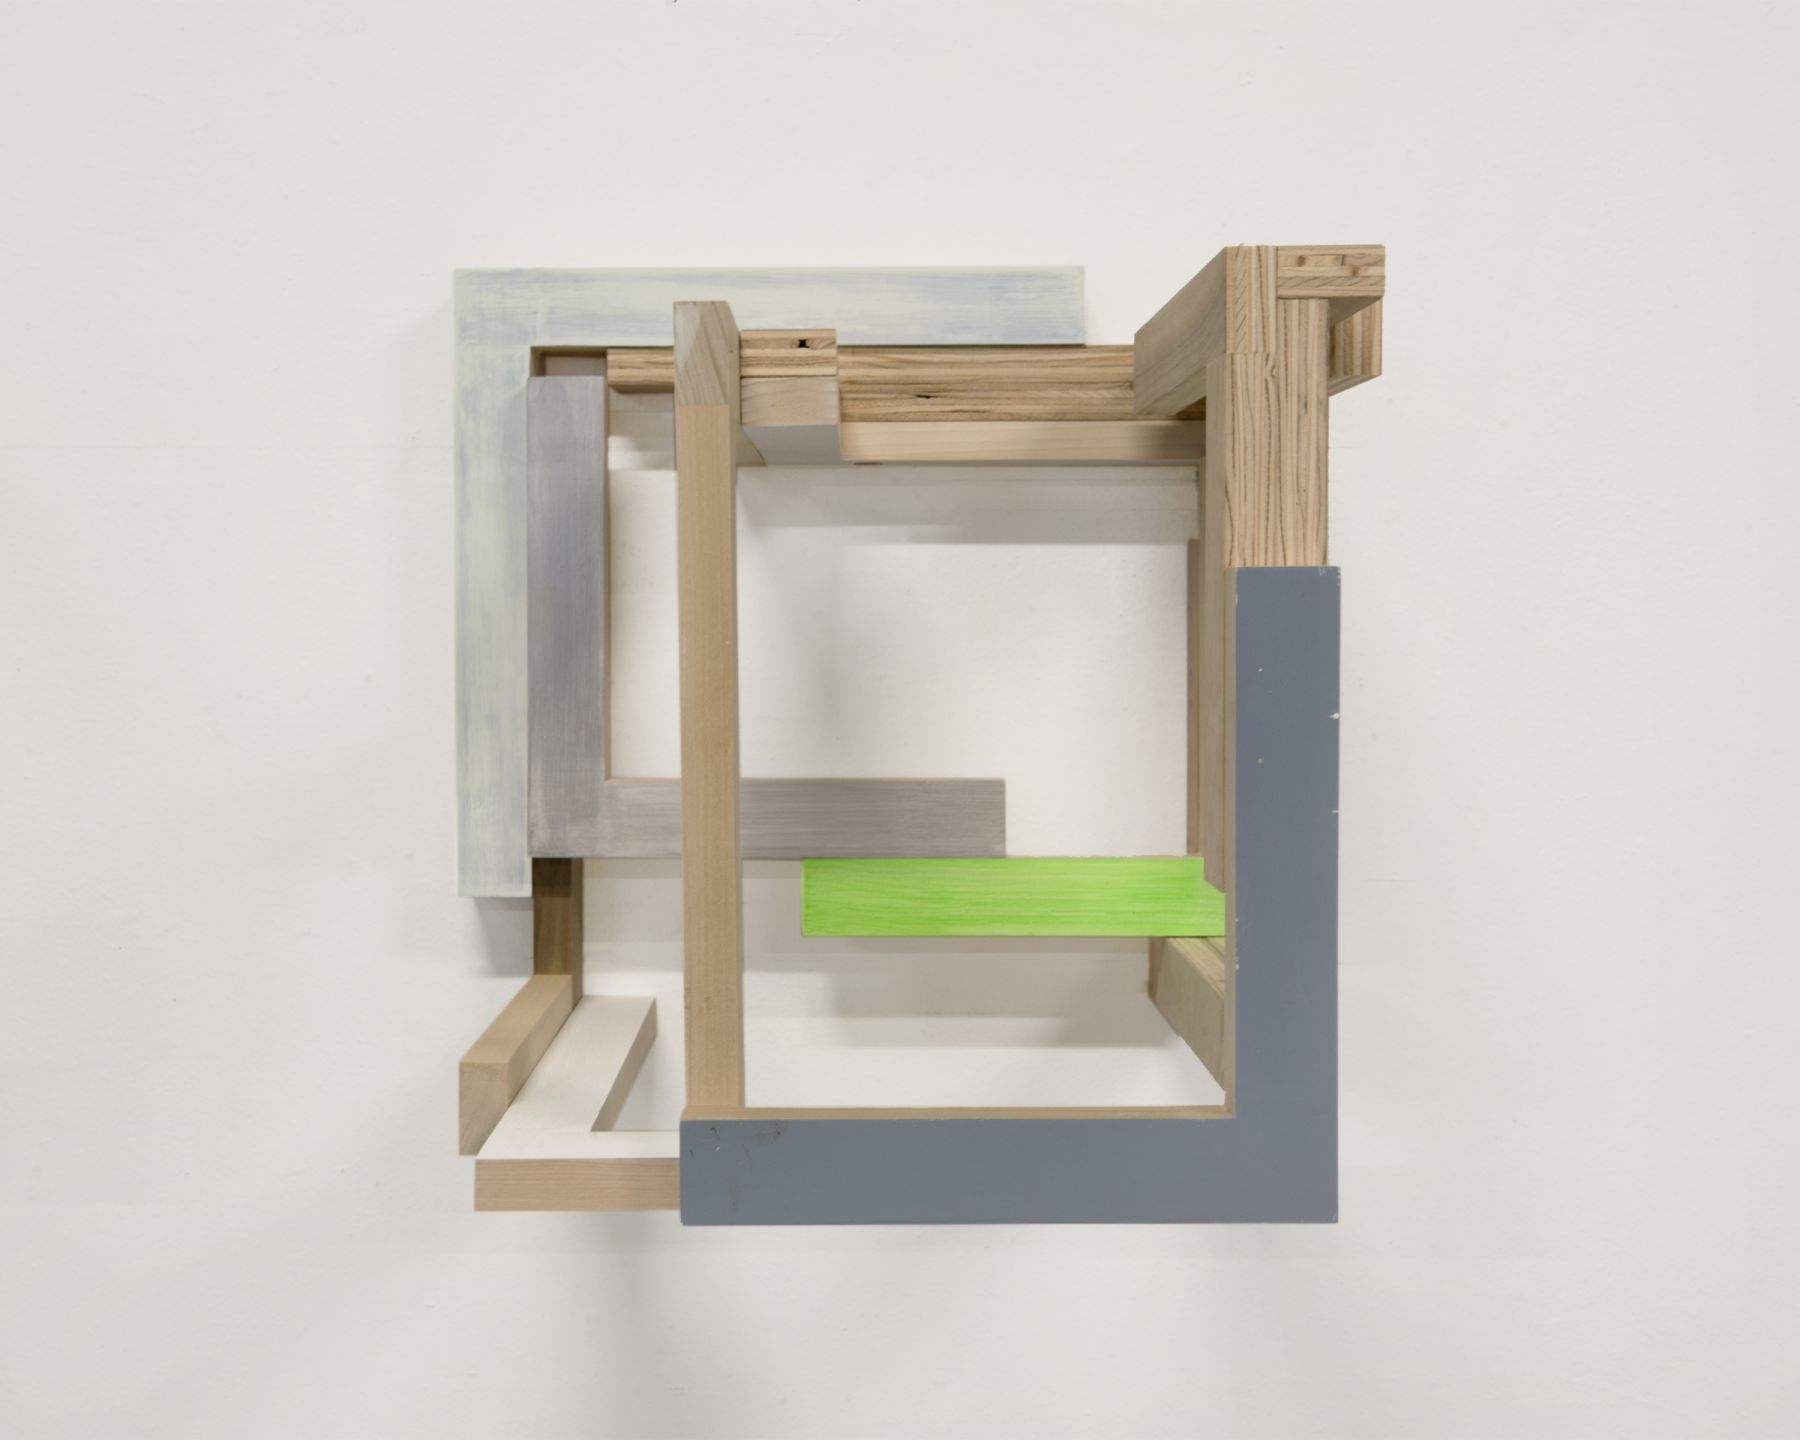 "James Woodfill ""Training Model: Wall Model #1"", birch plywood, poplar, maple with acrylic and gesso, wall mounted, 15"" x 15"" x 15"", 2019, an open wooden wall sculpture, with natural wood, light and medium grey, white and green"